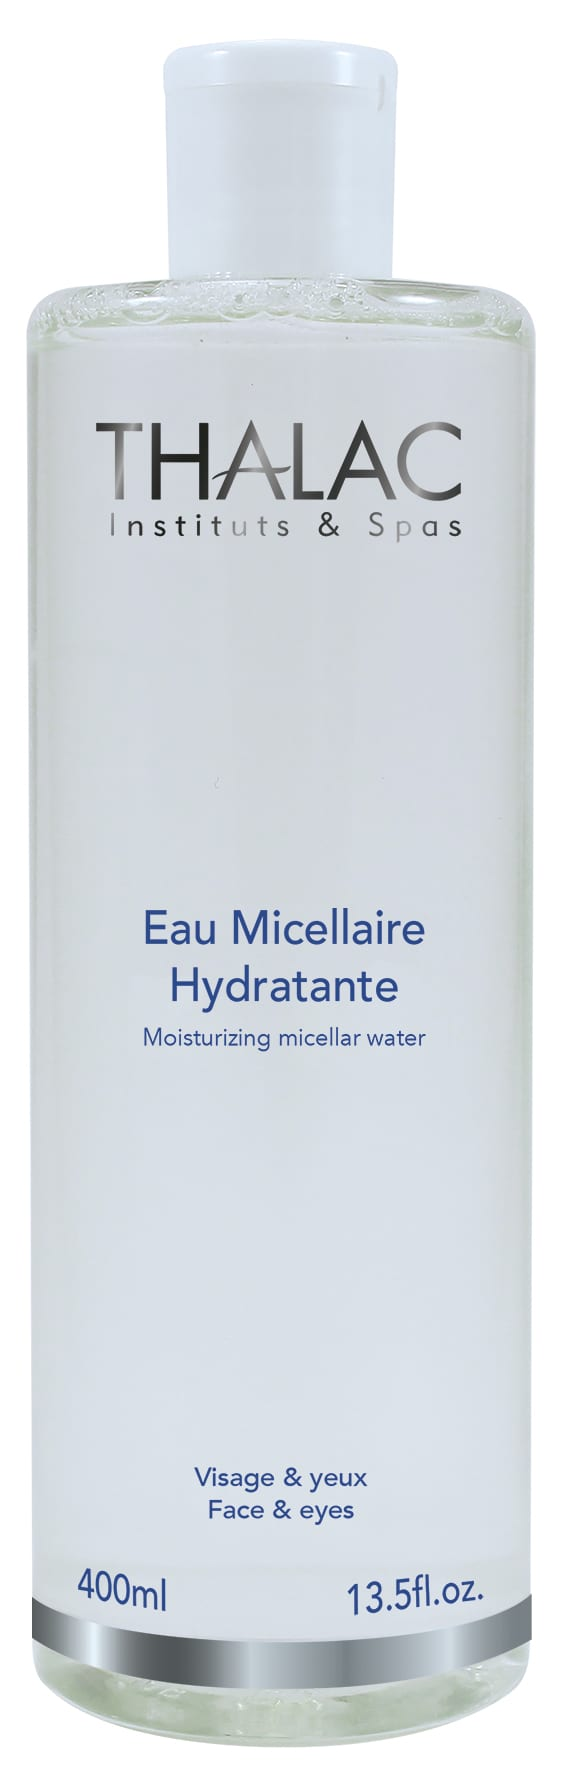 Eau Micellaire IMG 6387